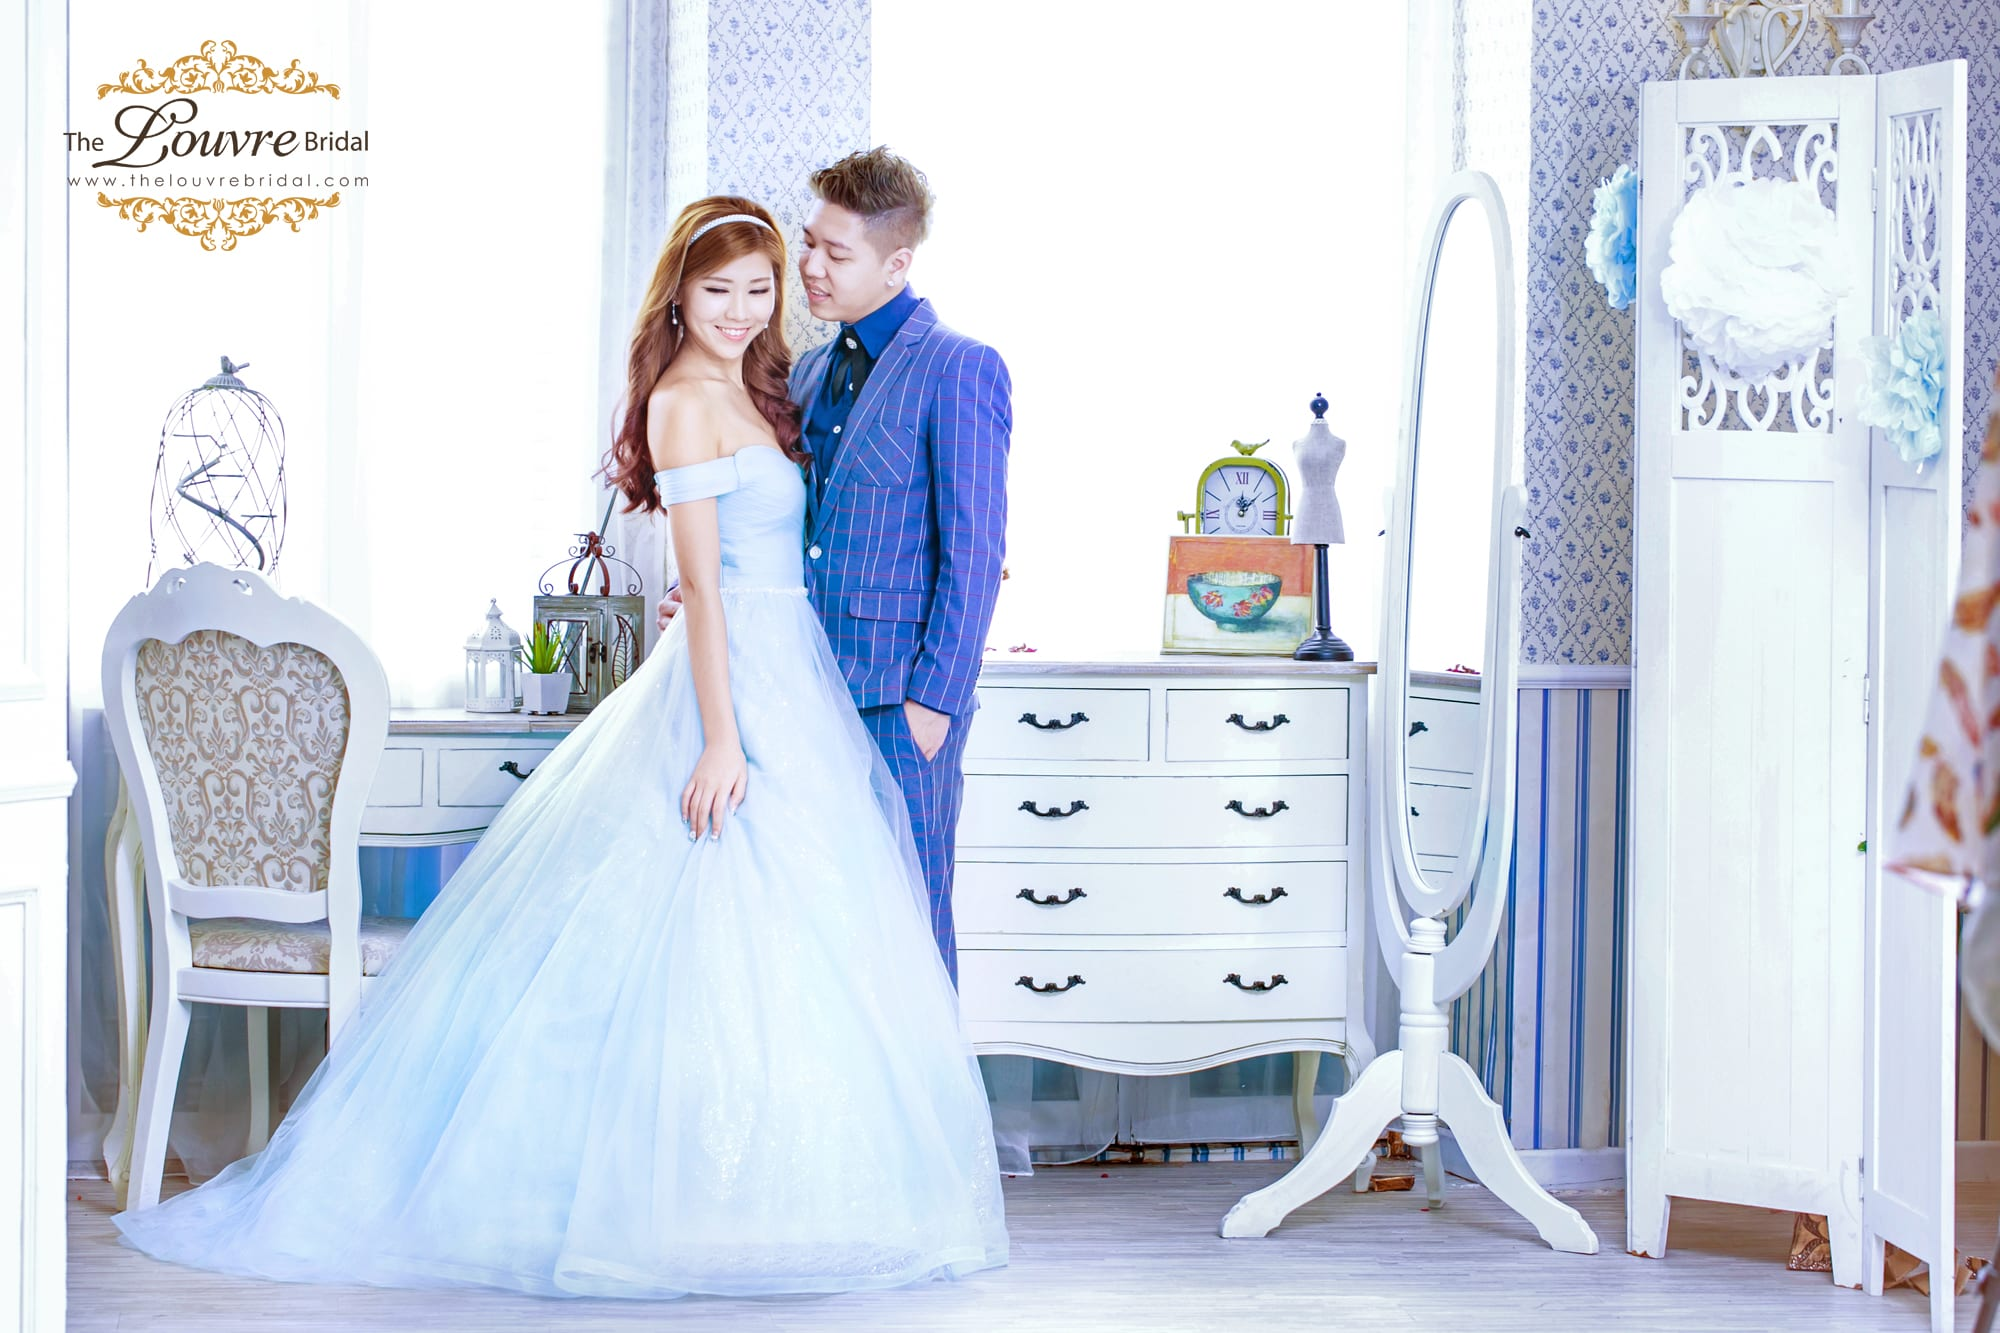 Photoshoot Tips 5 Items For Your Pre Wedding Photoshoot